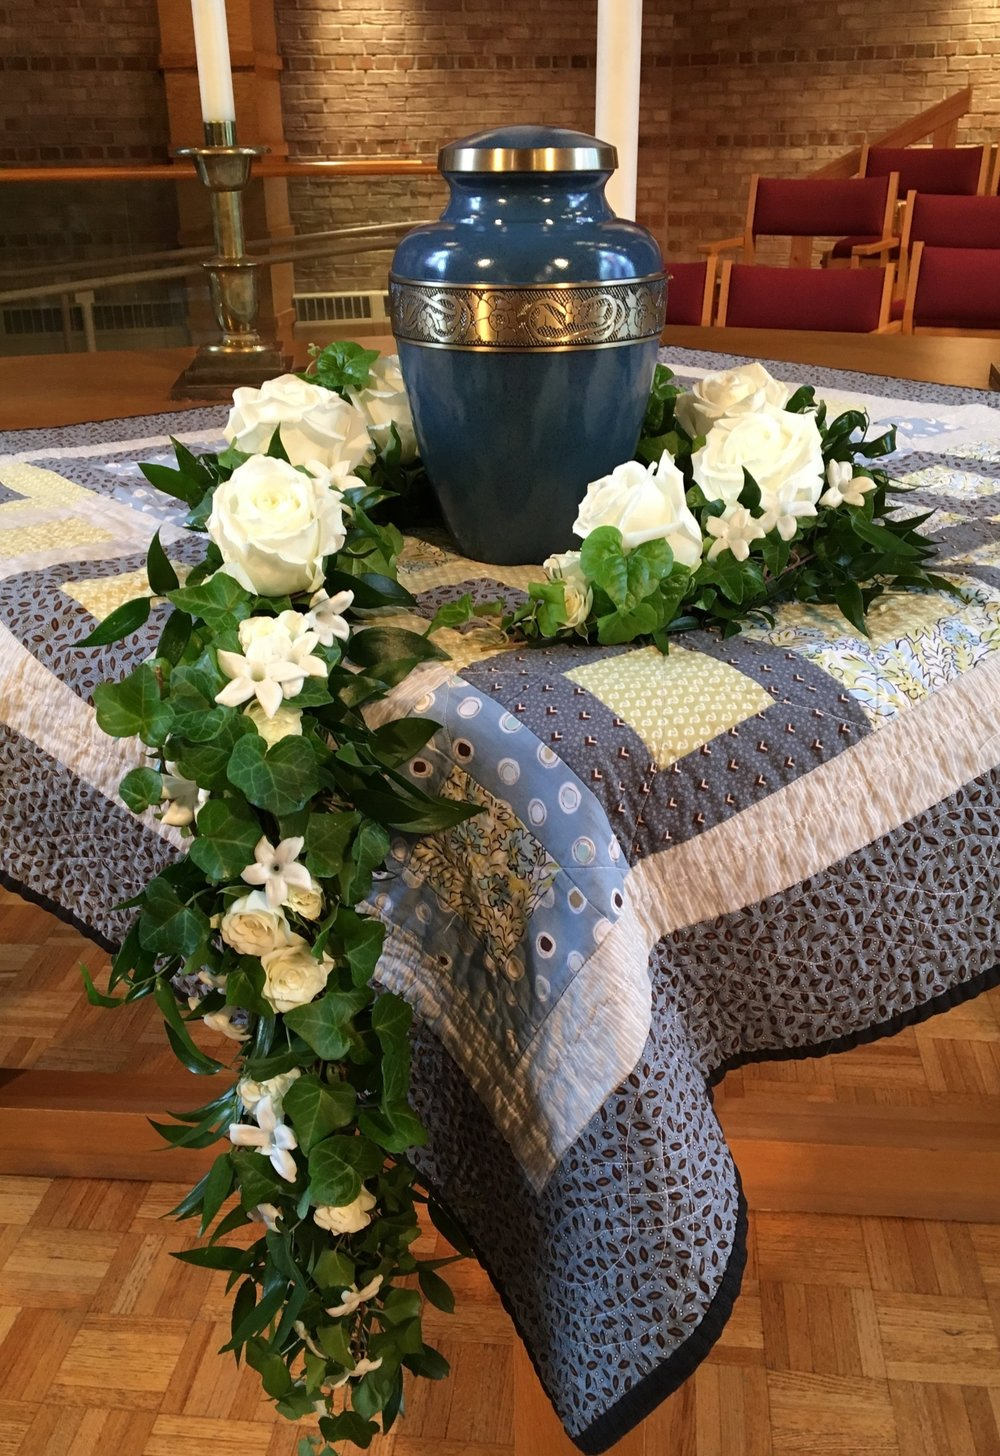 Garland around an urn